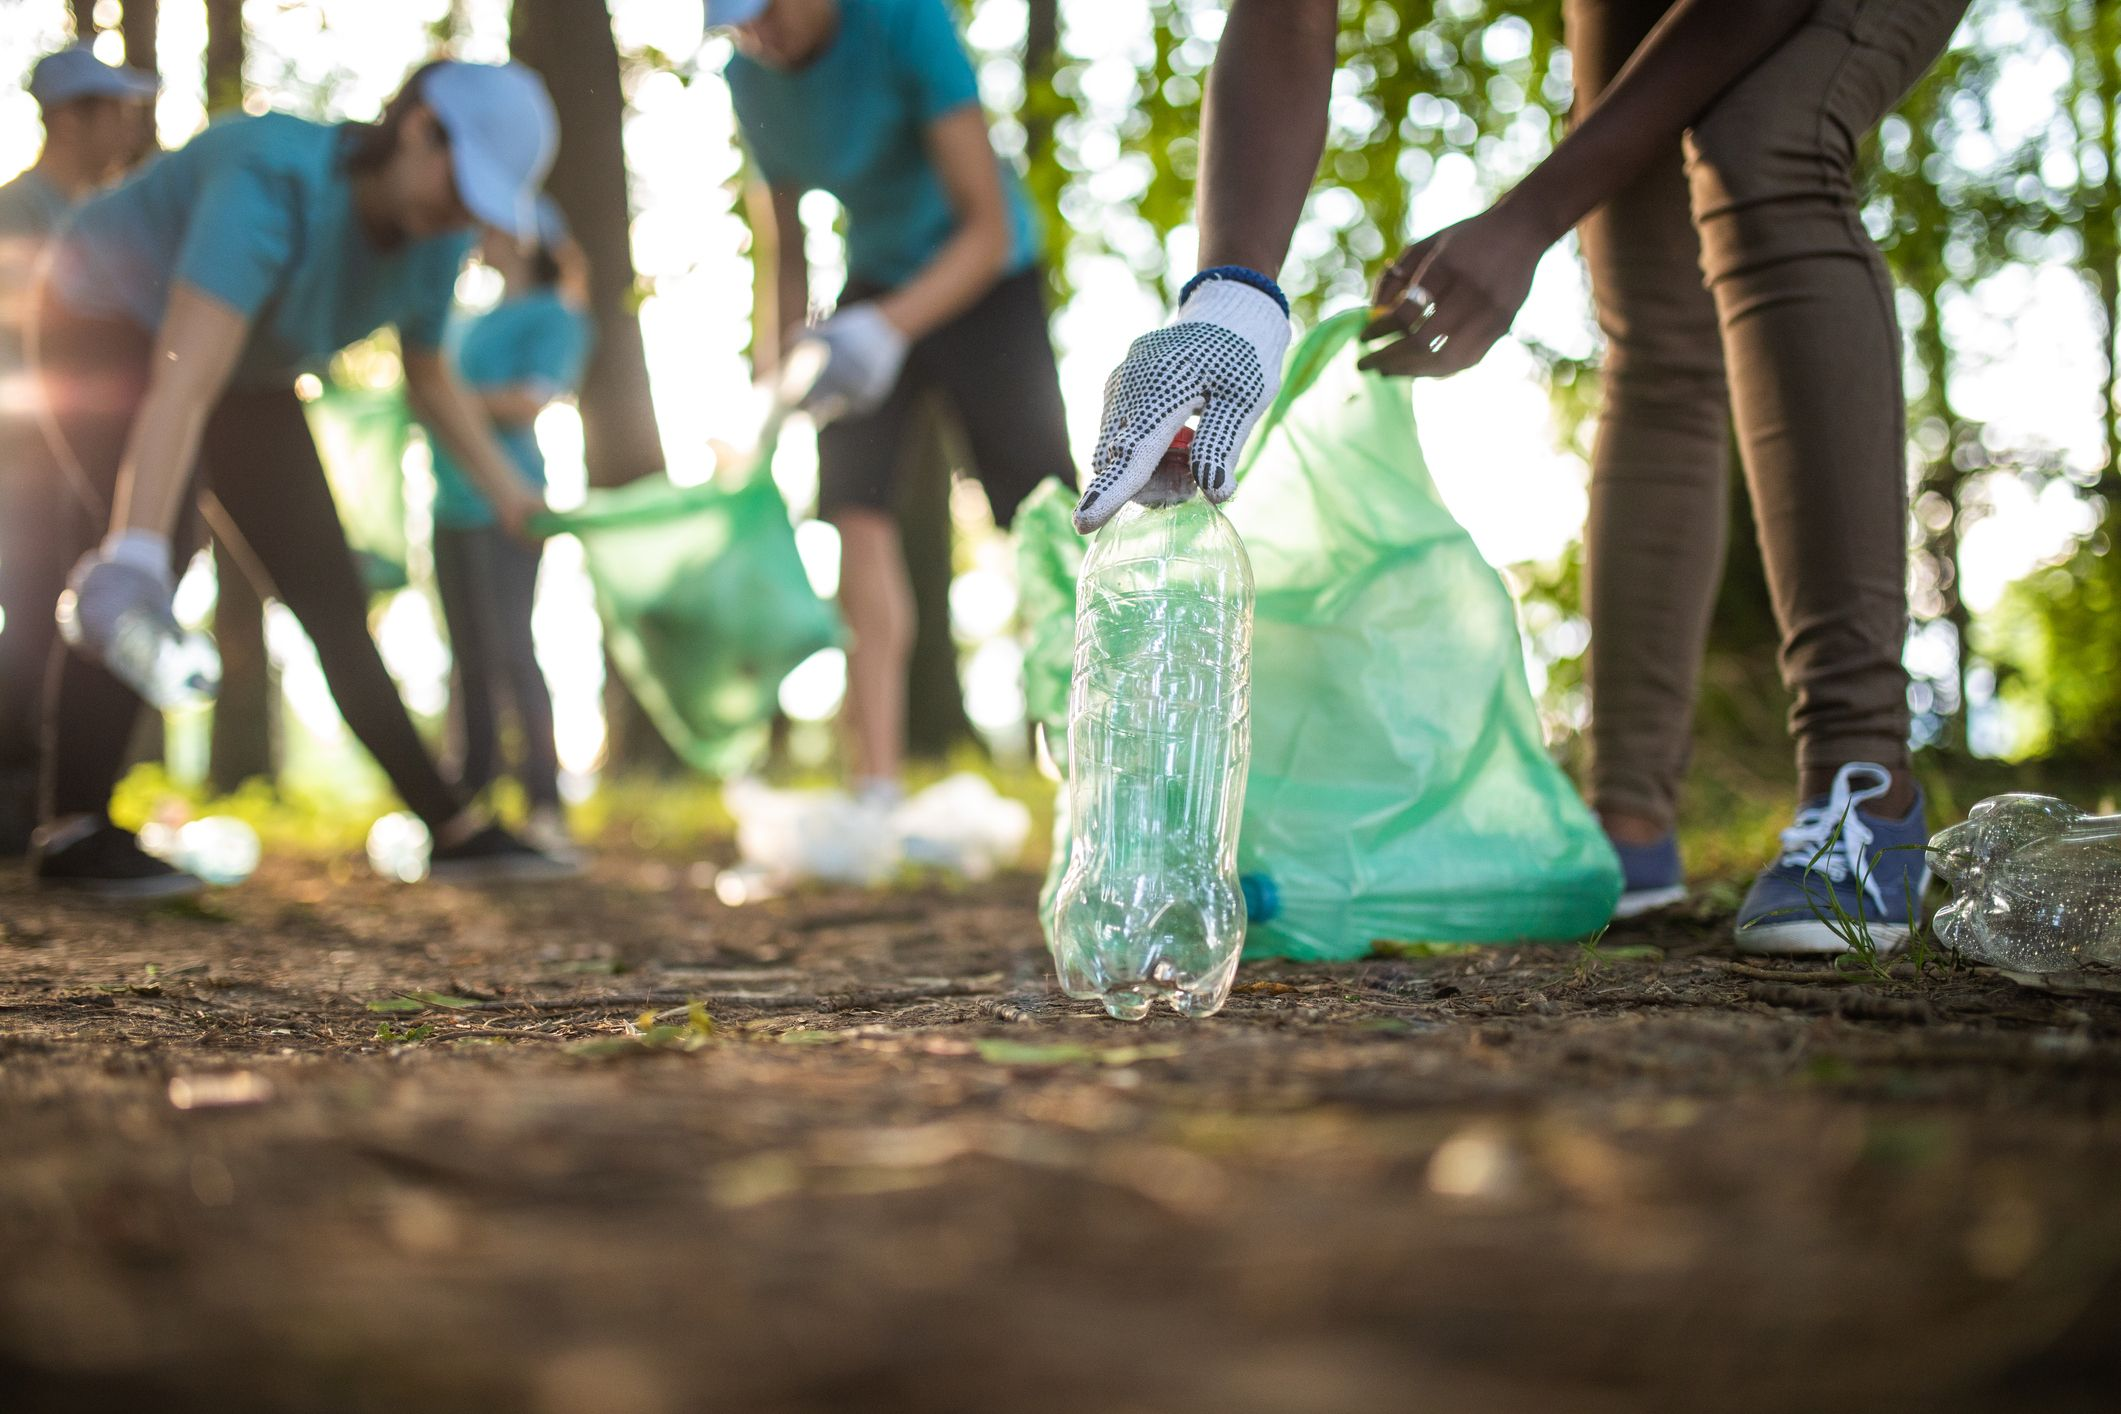 The Great British Spring Clean 2019 calls on all of us to help clean beaches, parks and roads